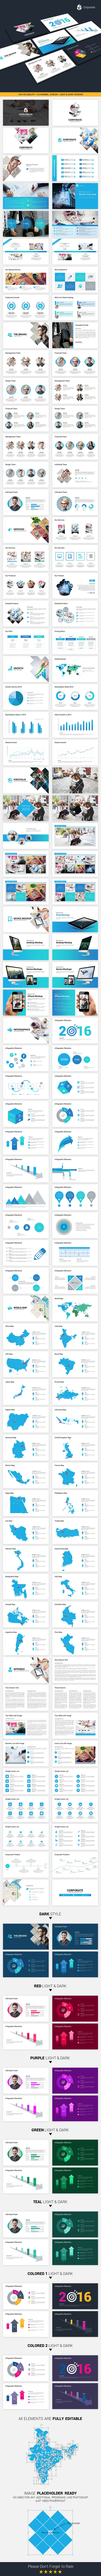 Corporate PowerPoint Template - Business PowerPoint Templates